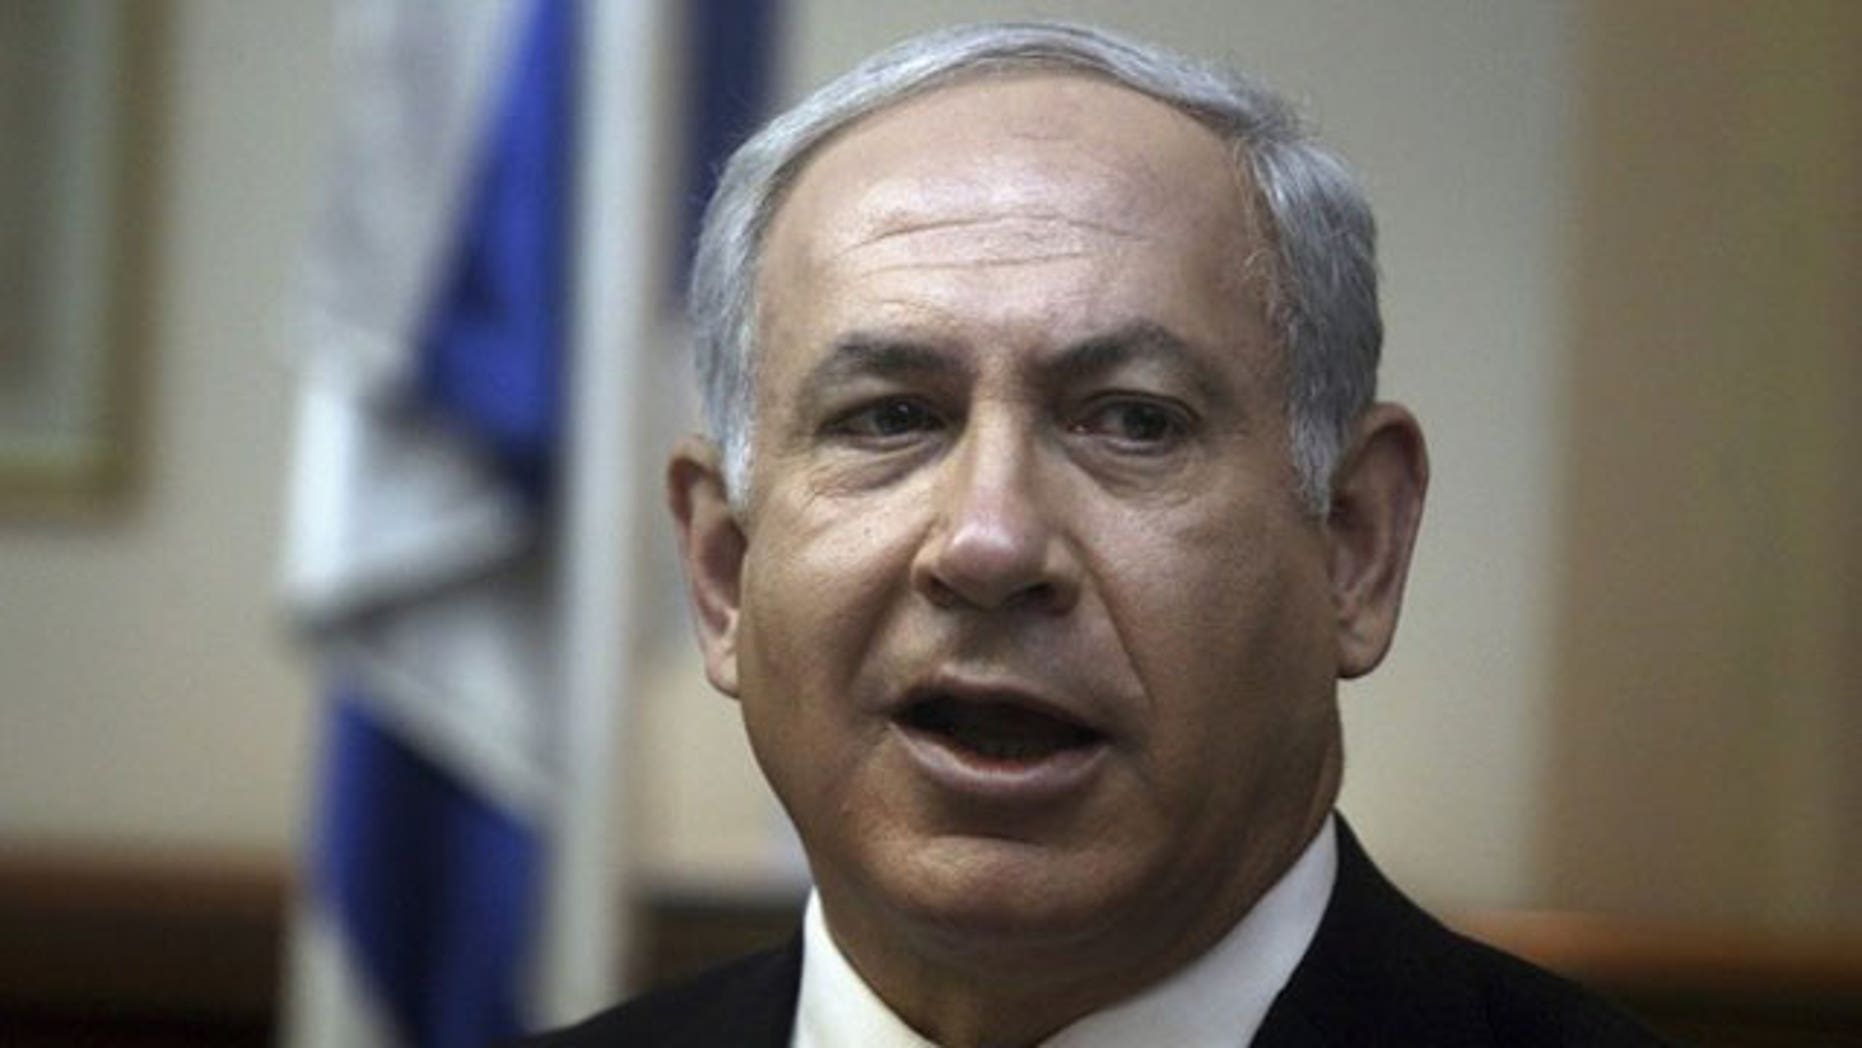 May 2: Israel's Prime Minister Benjamin Netanyahu attends the weekly cabinet meeting in his office in Jerusalem (Reuters).